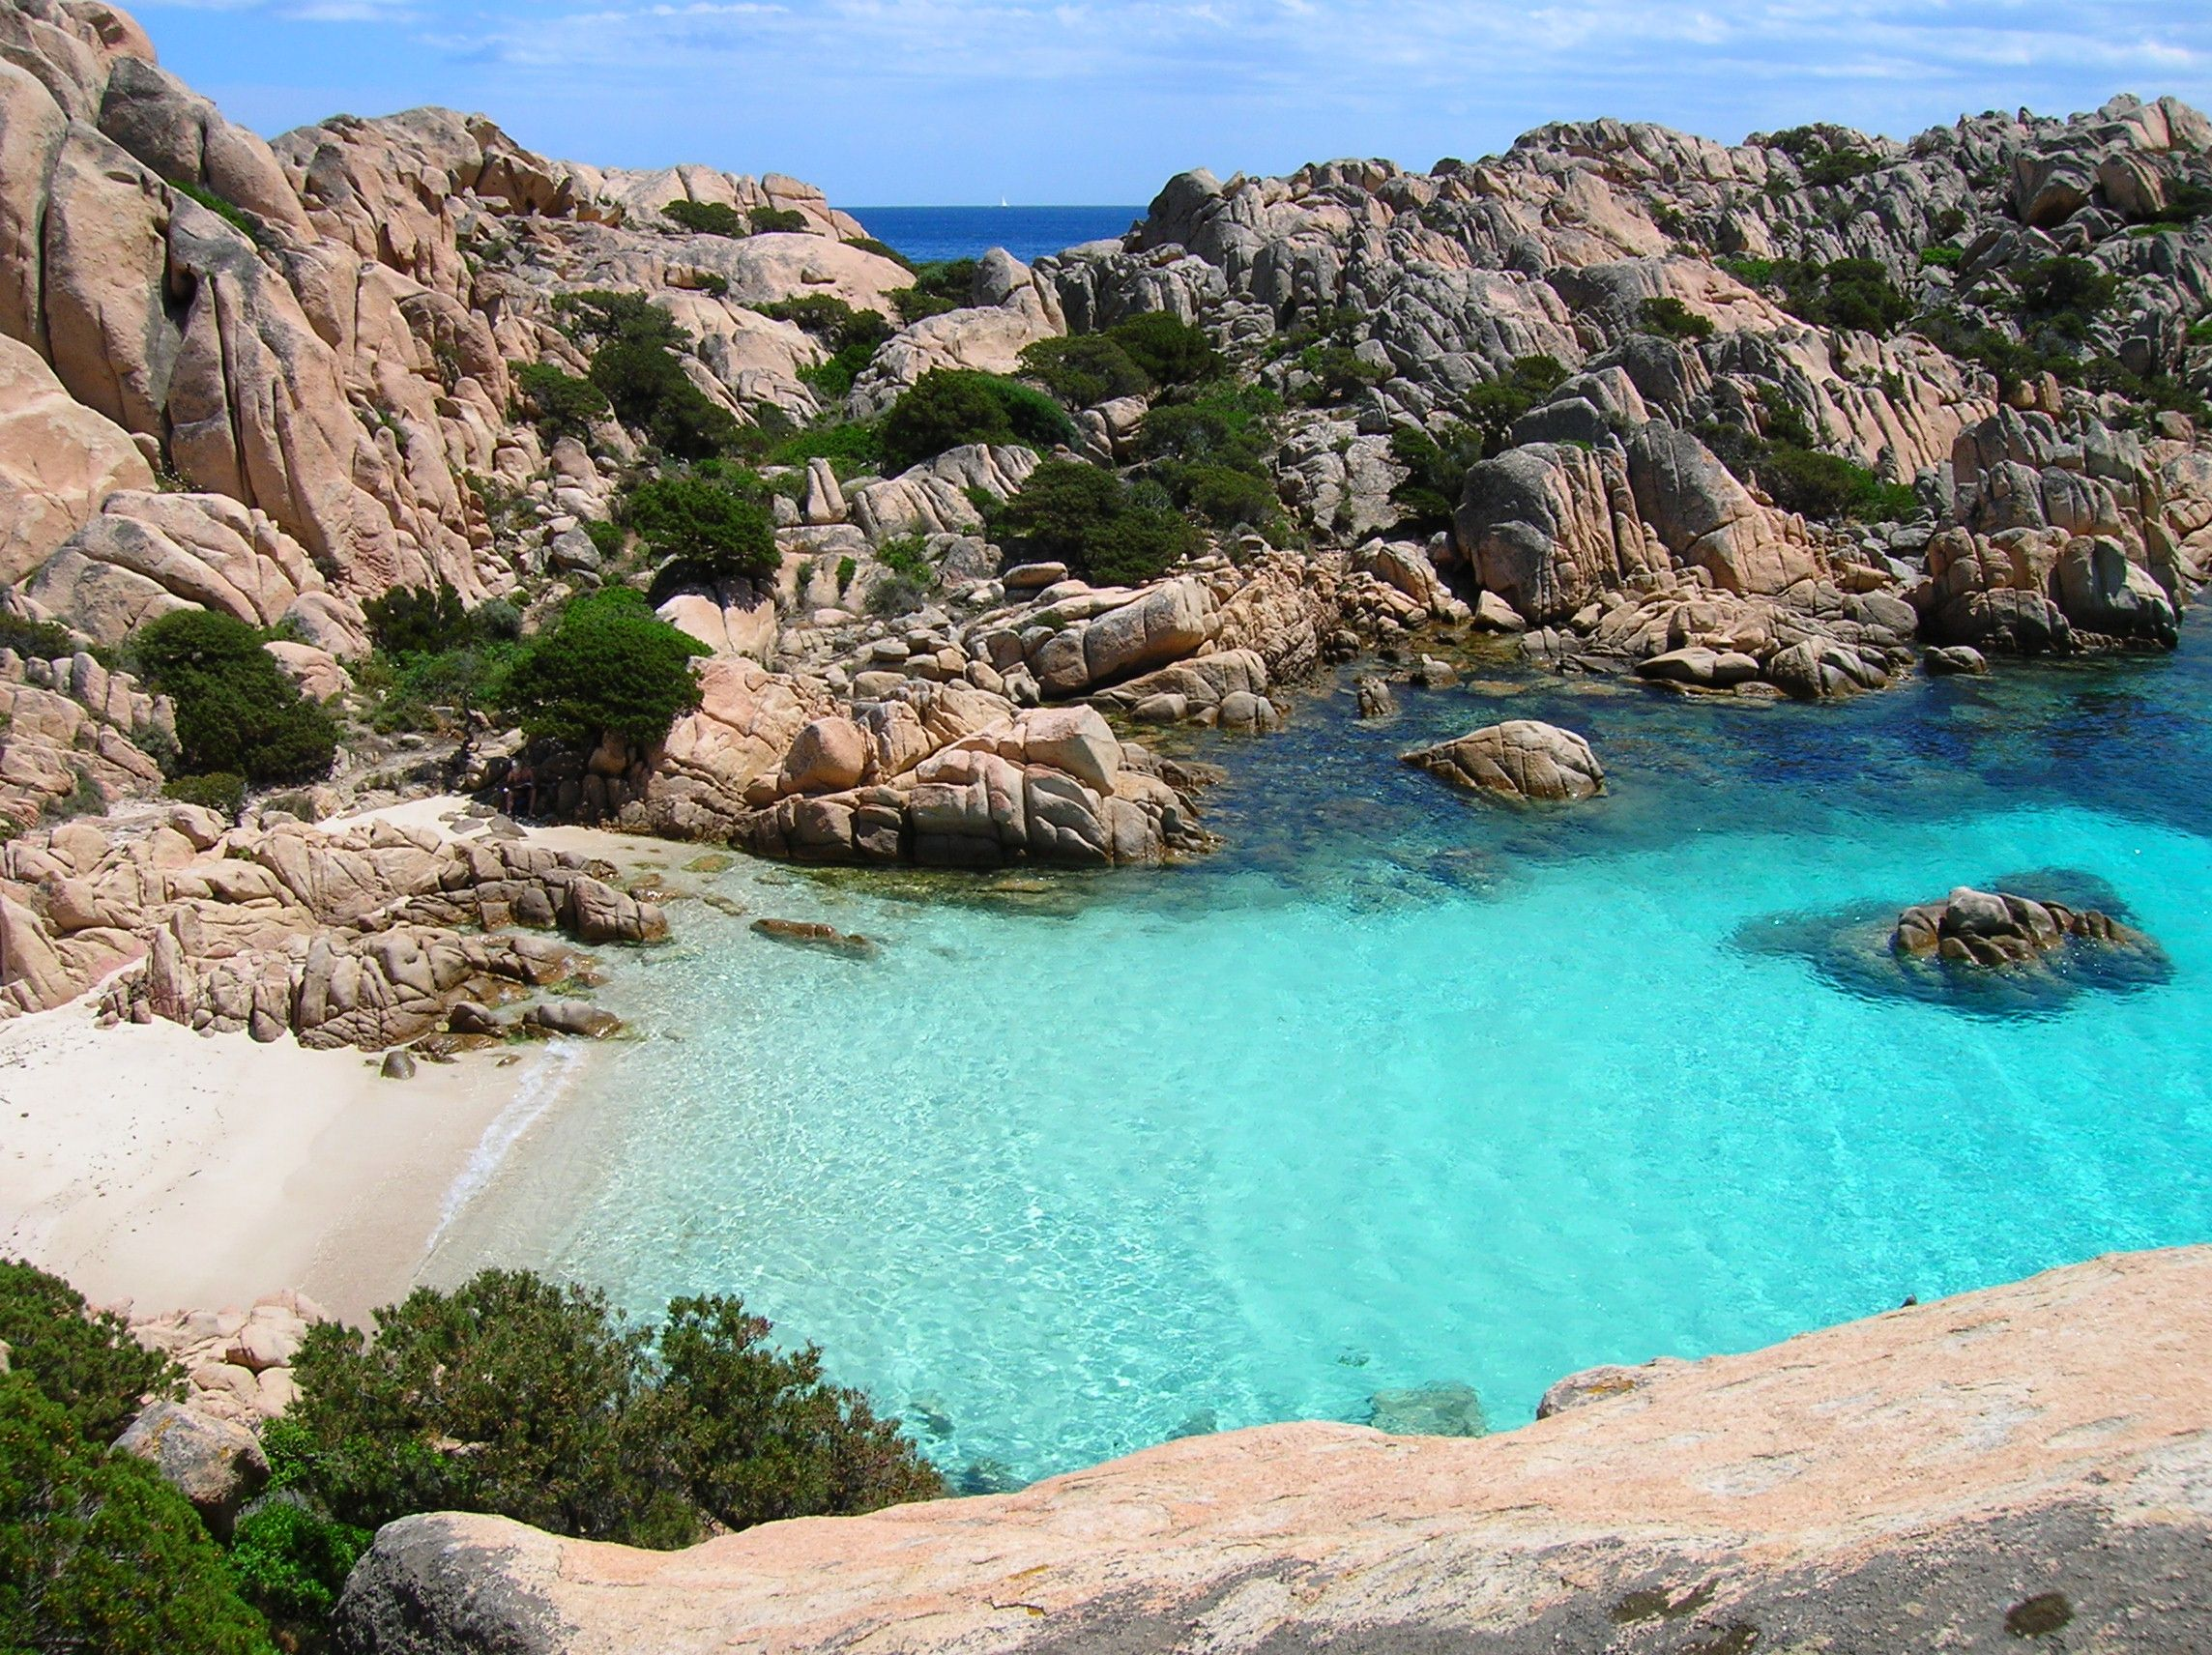 cala coticcio sardinia also known as thaiti beach sardinia beaches pinterest sardinien. Black Bedroom Furniture Sets. Home Design Ideas